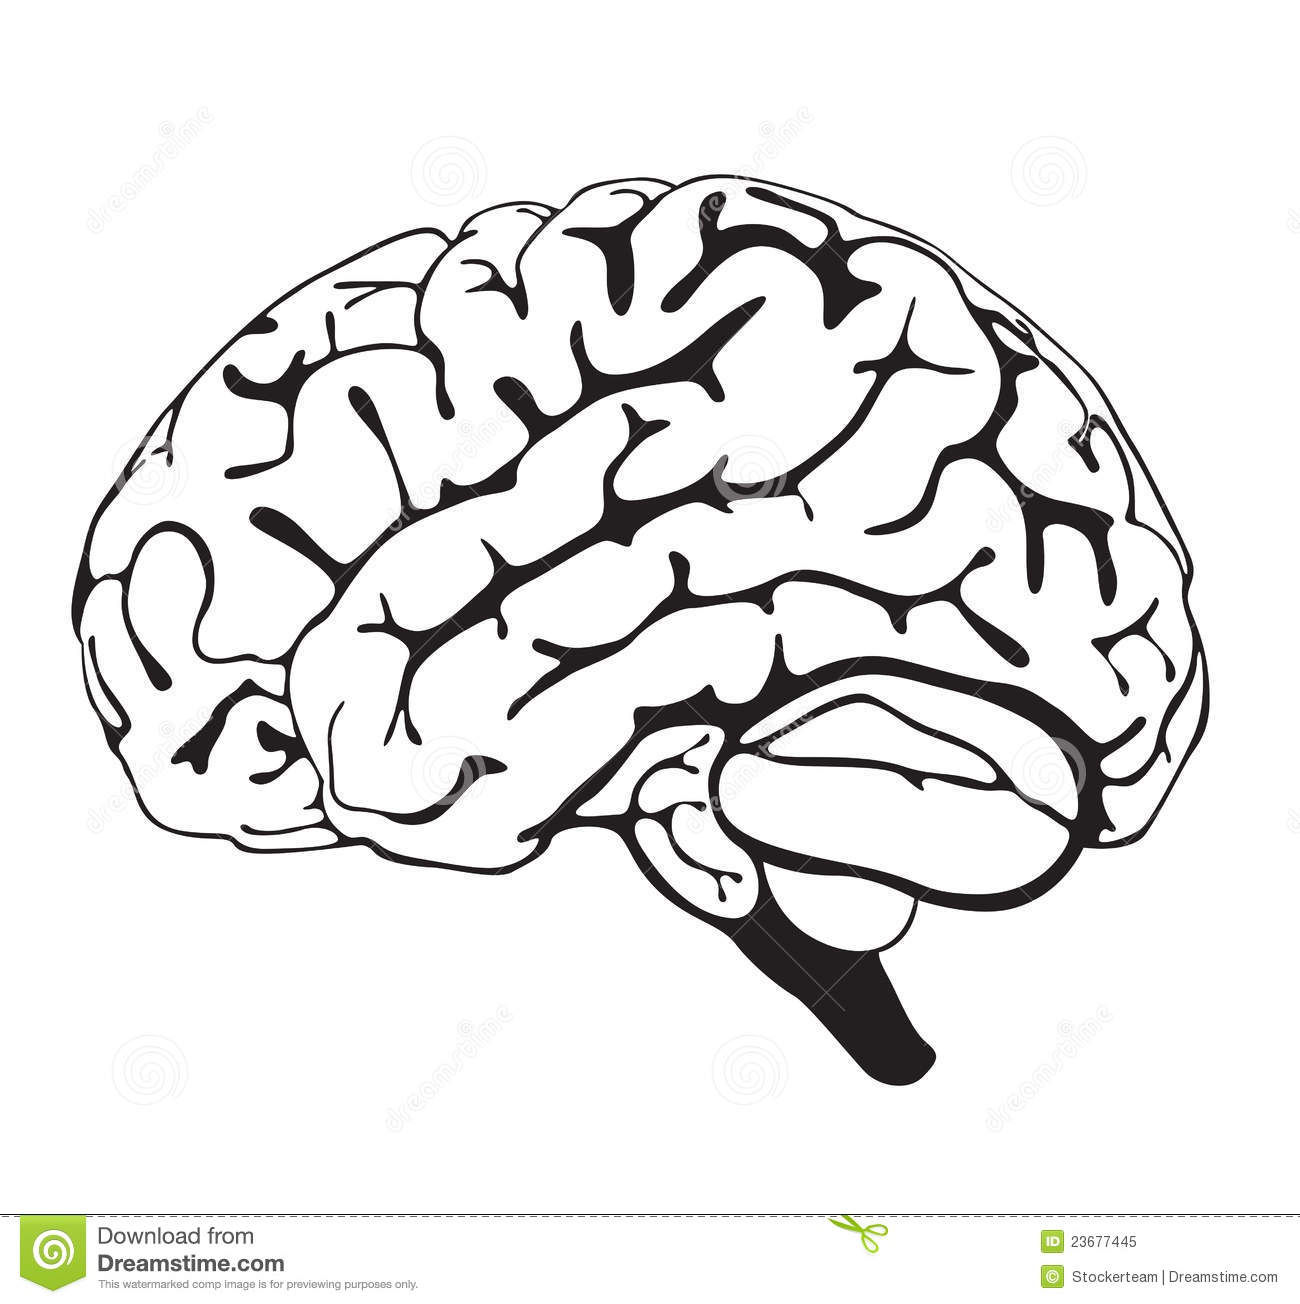 Drawing Brain Closeup Royalty Free Stock Photo